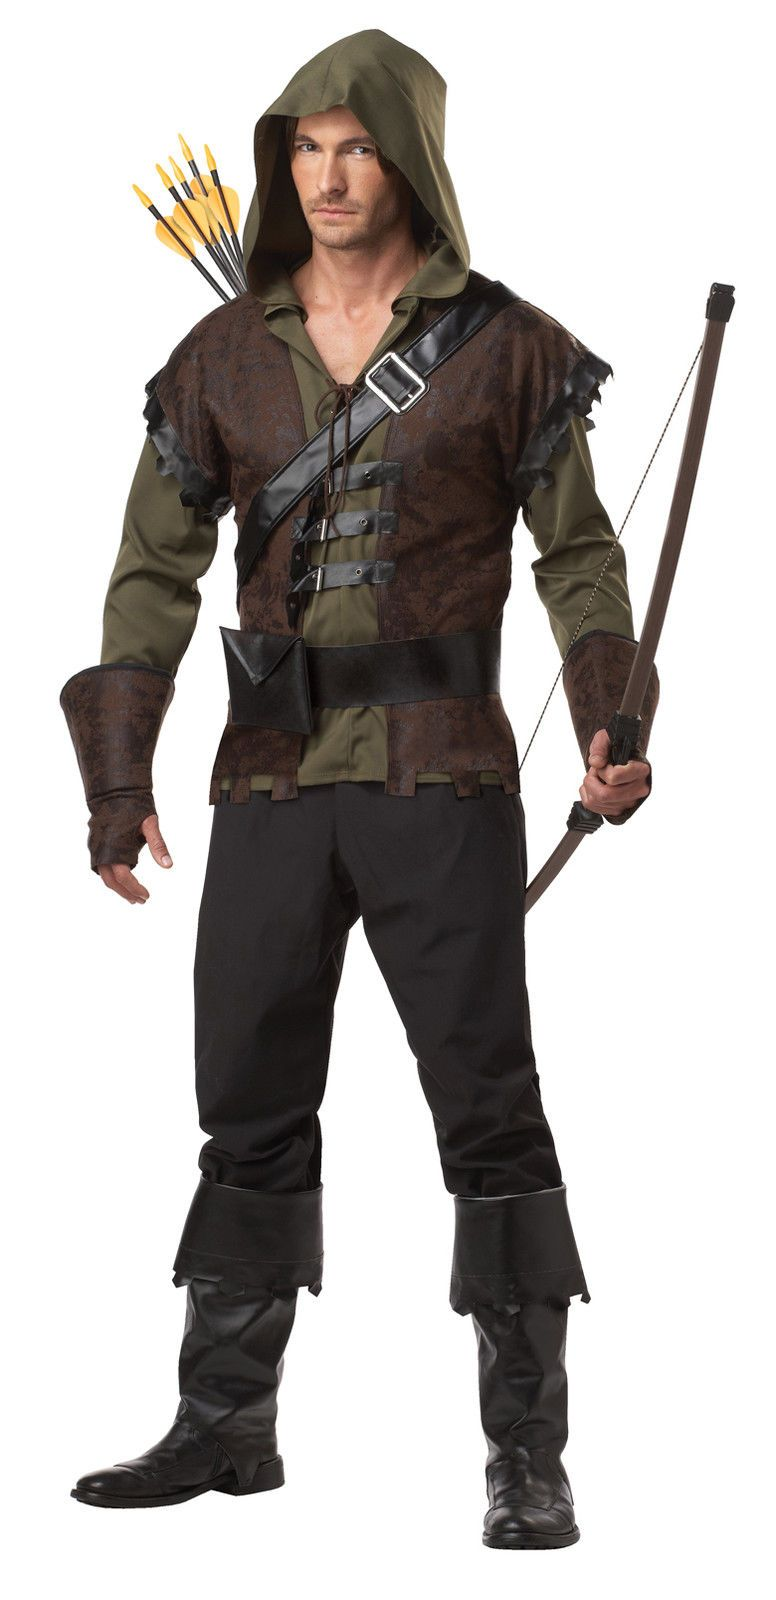 MENS ADULT ROBIN HOOD MEDIEVAL FANCY DRESS COSTUME ARCHER OUTFIT ...